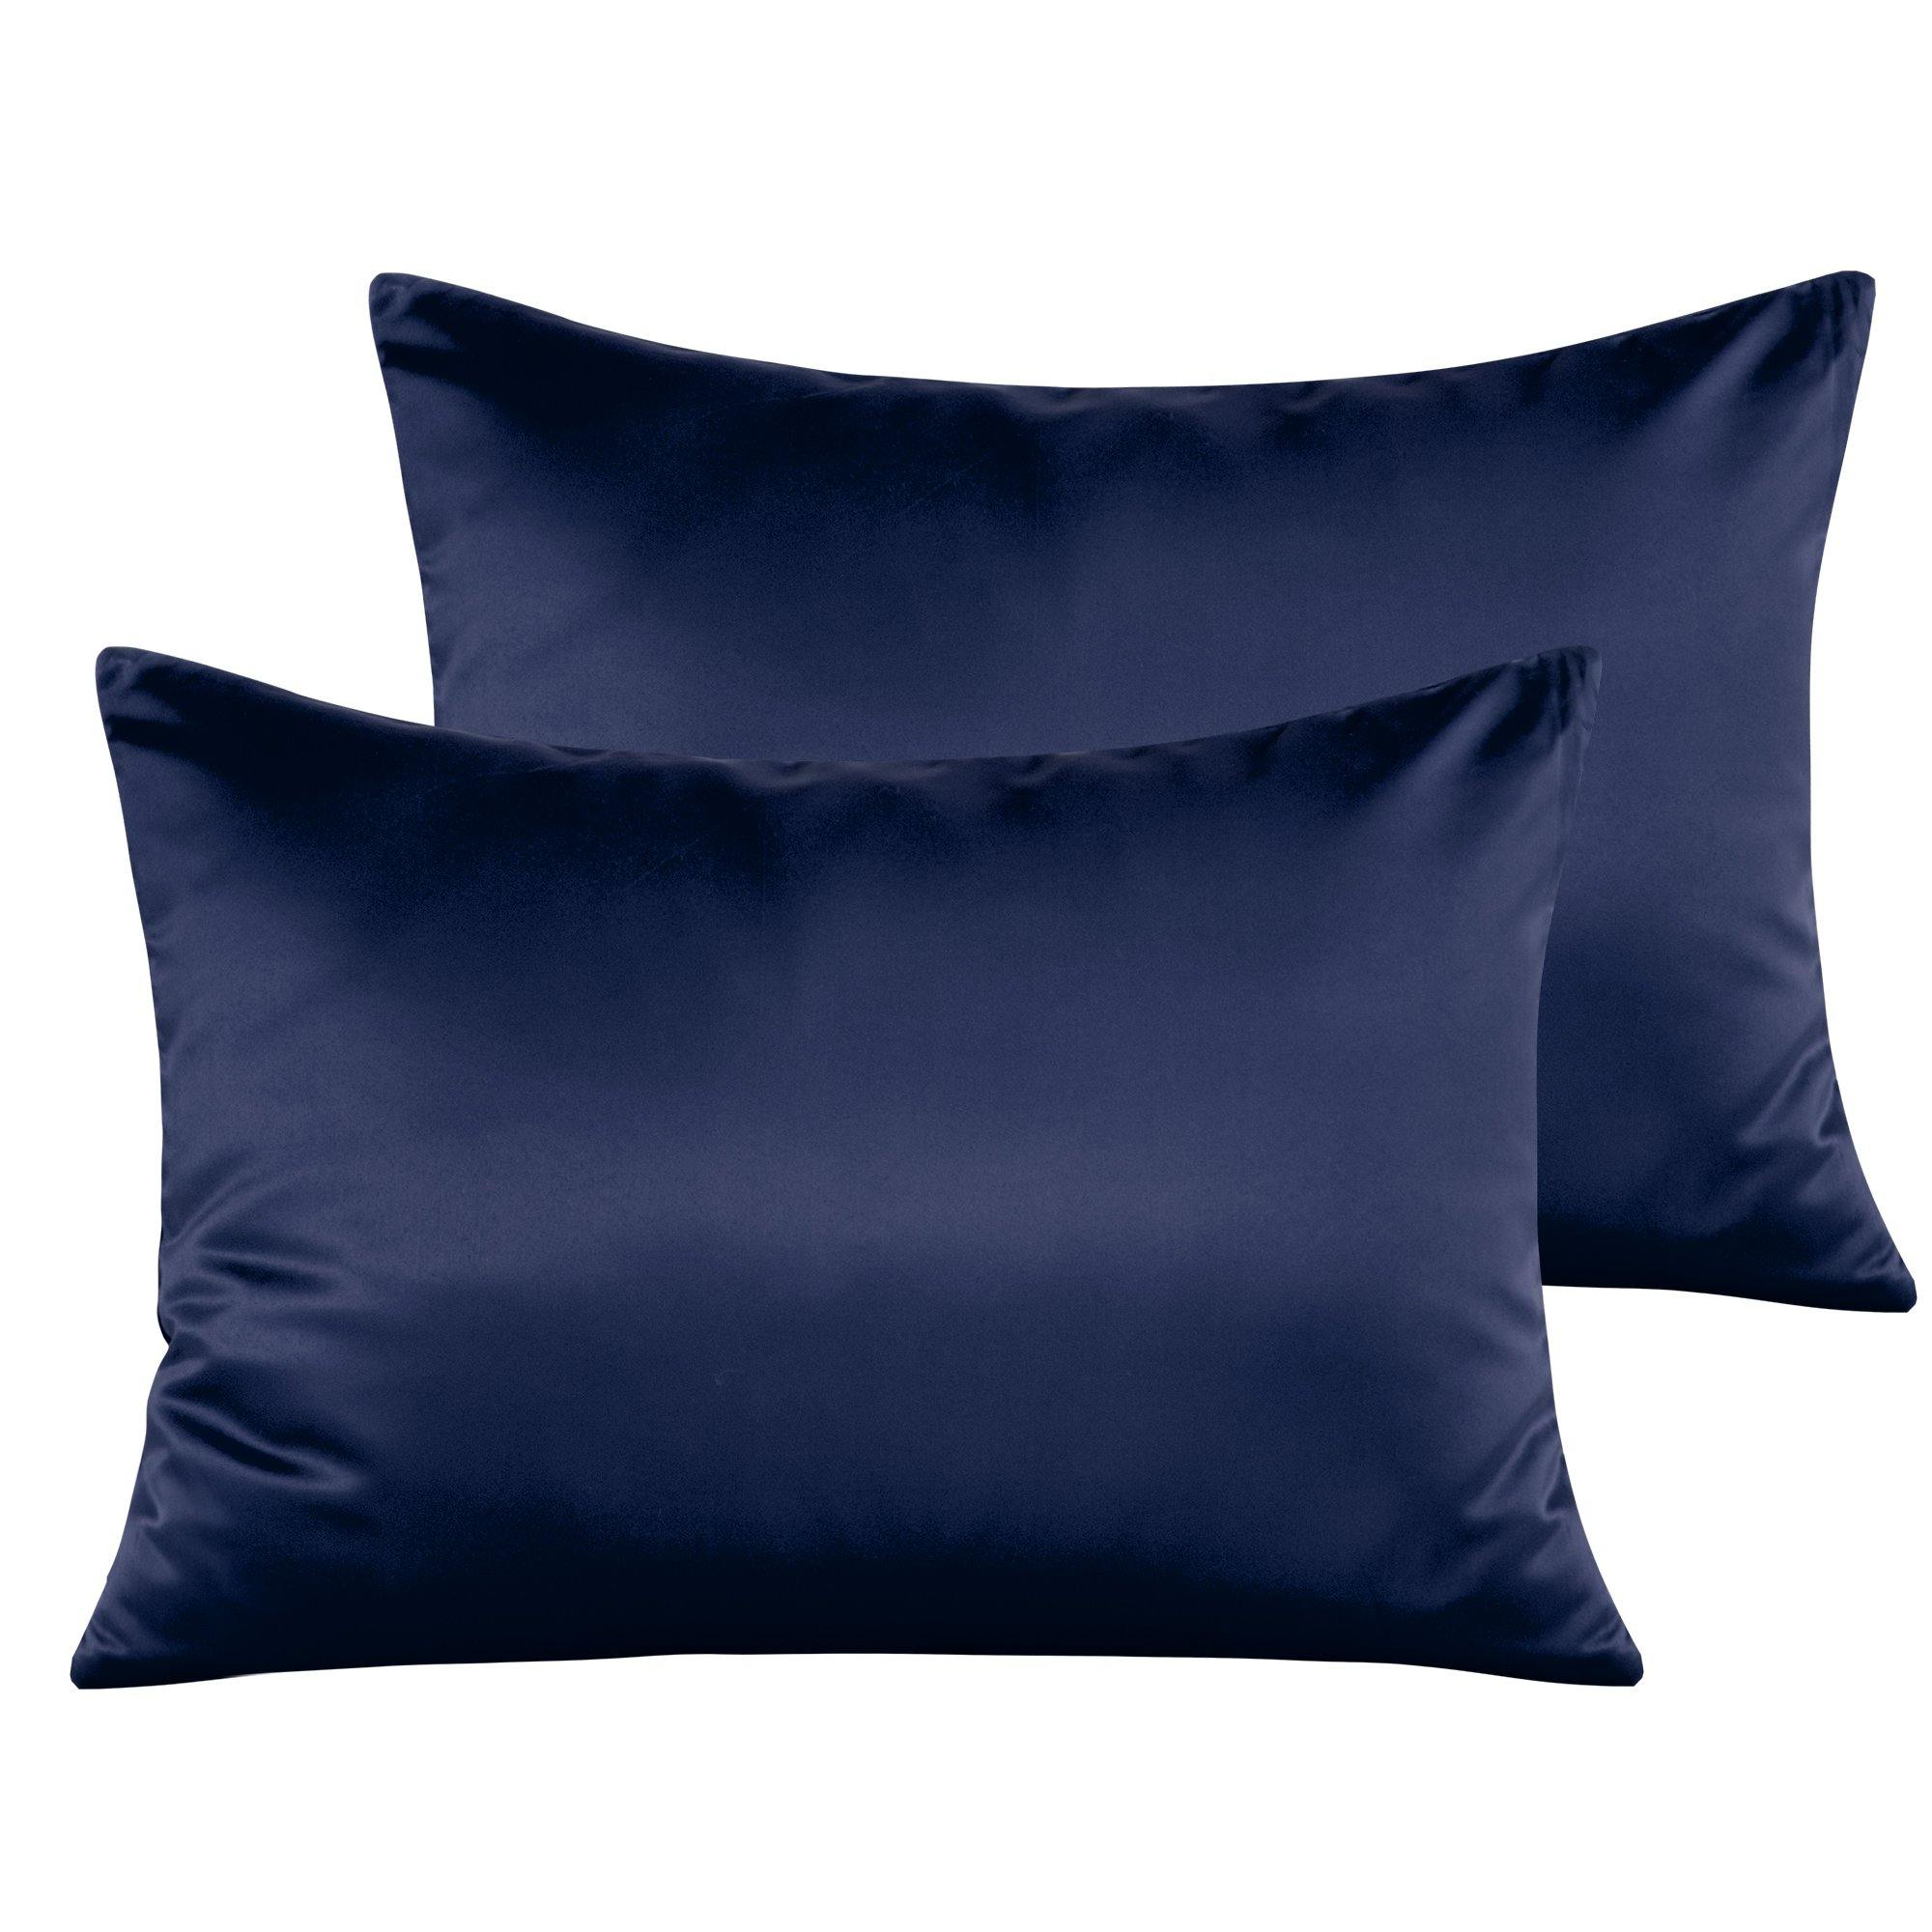 Zipper Closure Super Soft and Luxury Travel Pillow Covers Set of 2 13x 18 Navy Blue NTBAY Satin Toddler Pillowcases